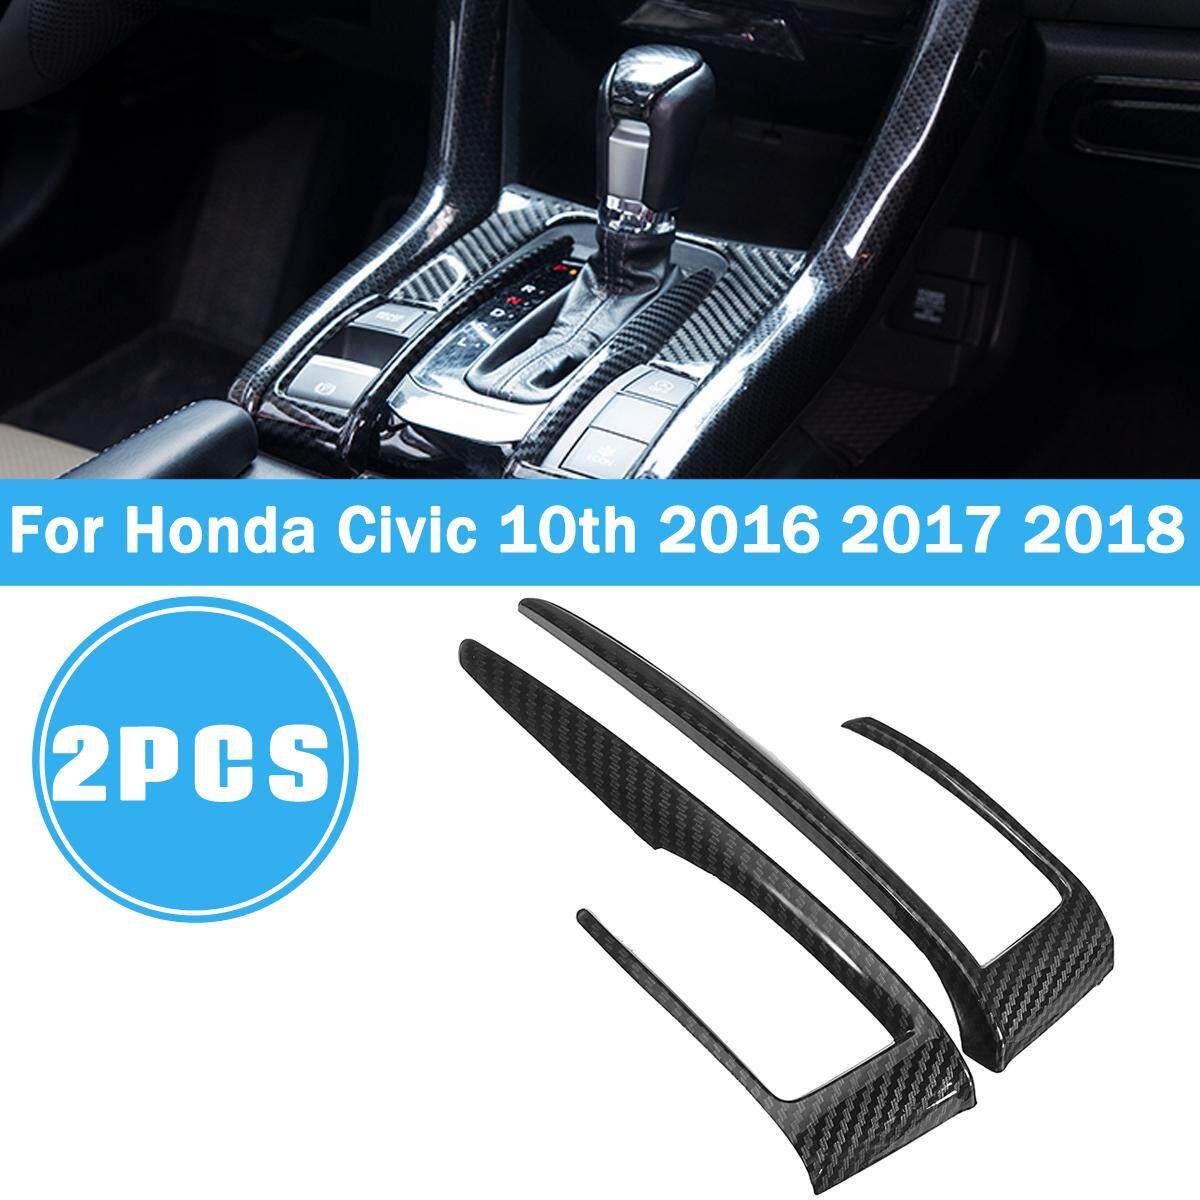 2x Carbon Fiber Style Gear Shift Frame Cover Trim For Honda Civic 10th 2016 2017 2018 By Audew.